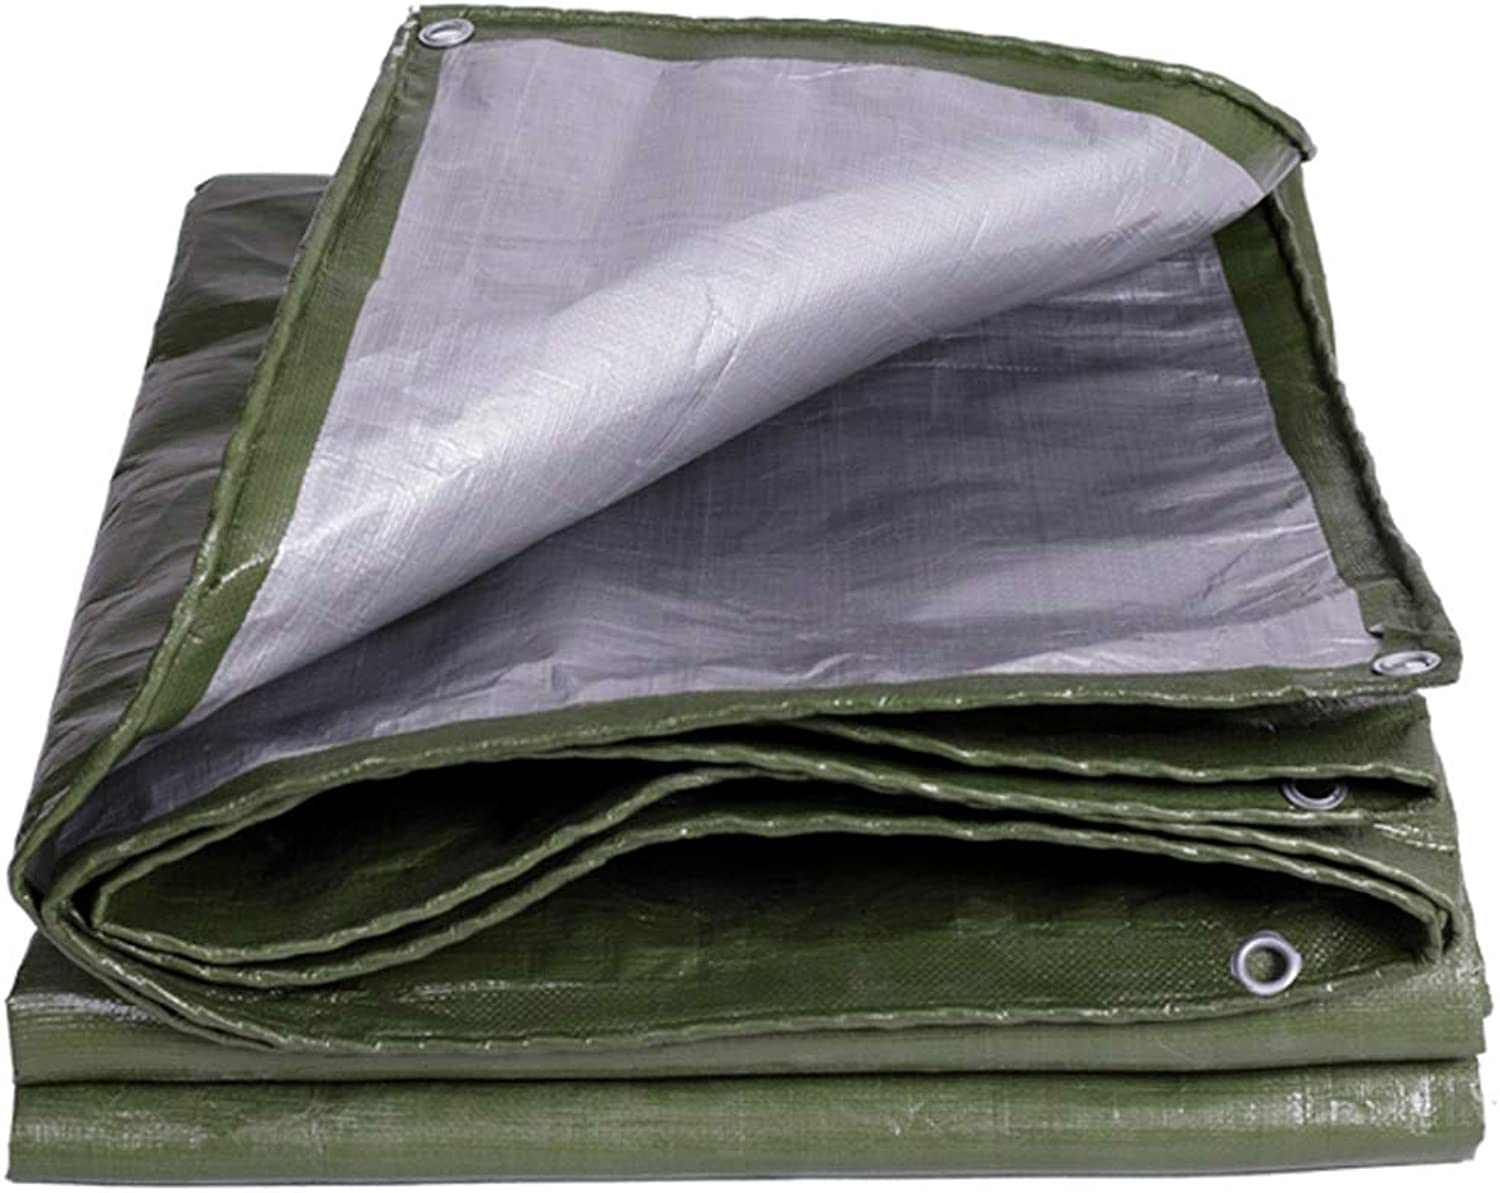 Thickened Waterproof Cloth Waterproof Sunscreen Tarpaulin Outdoor Sunshade Shelter Awning Cloth Truck Cover Cloth Plastic Oil (color   Green, Size   3  3)